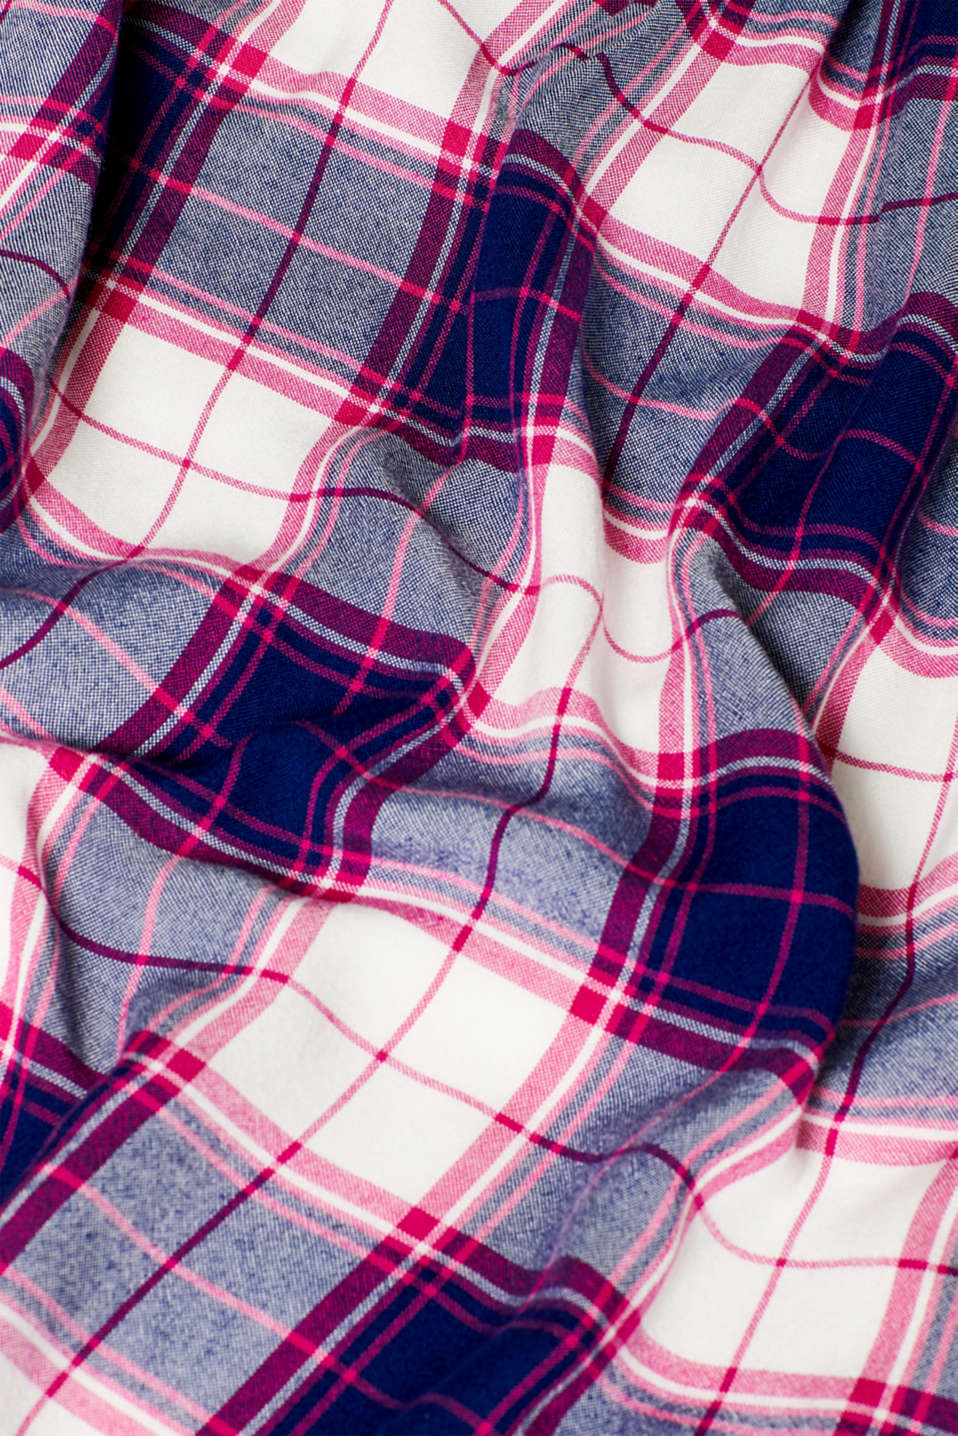 Woven check dress, LCDARK BLUE, detail image number 4